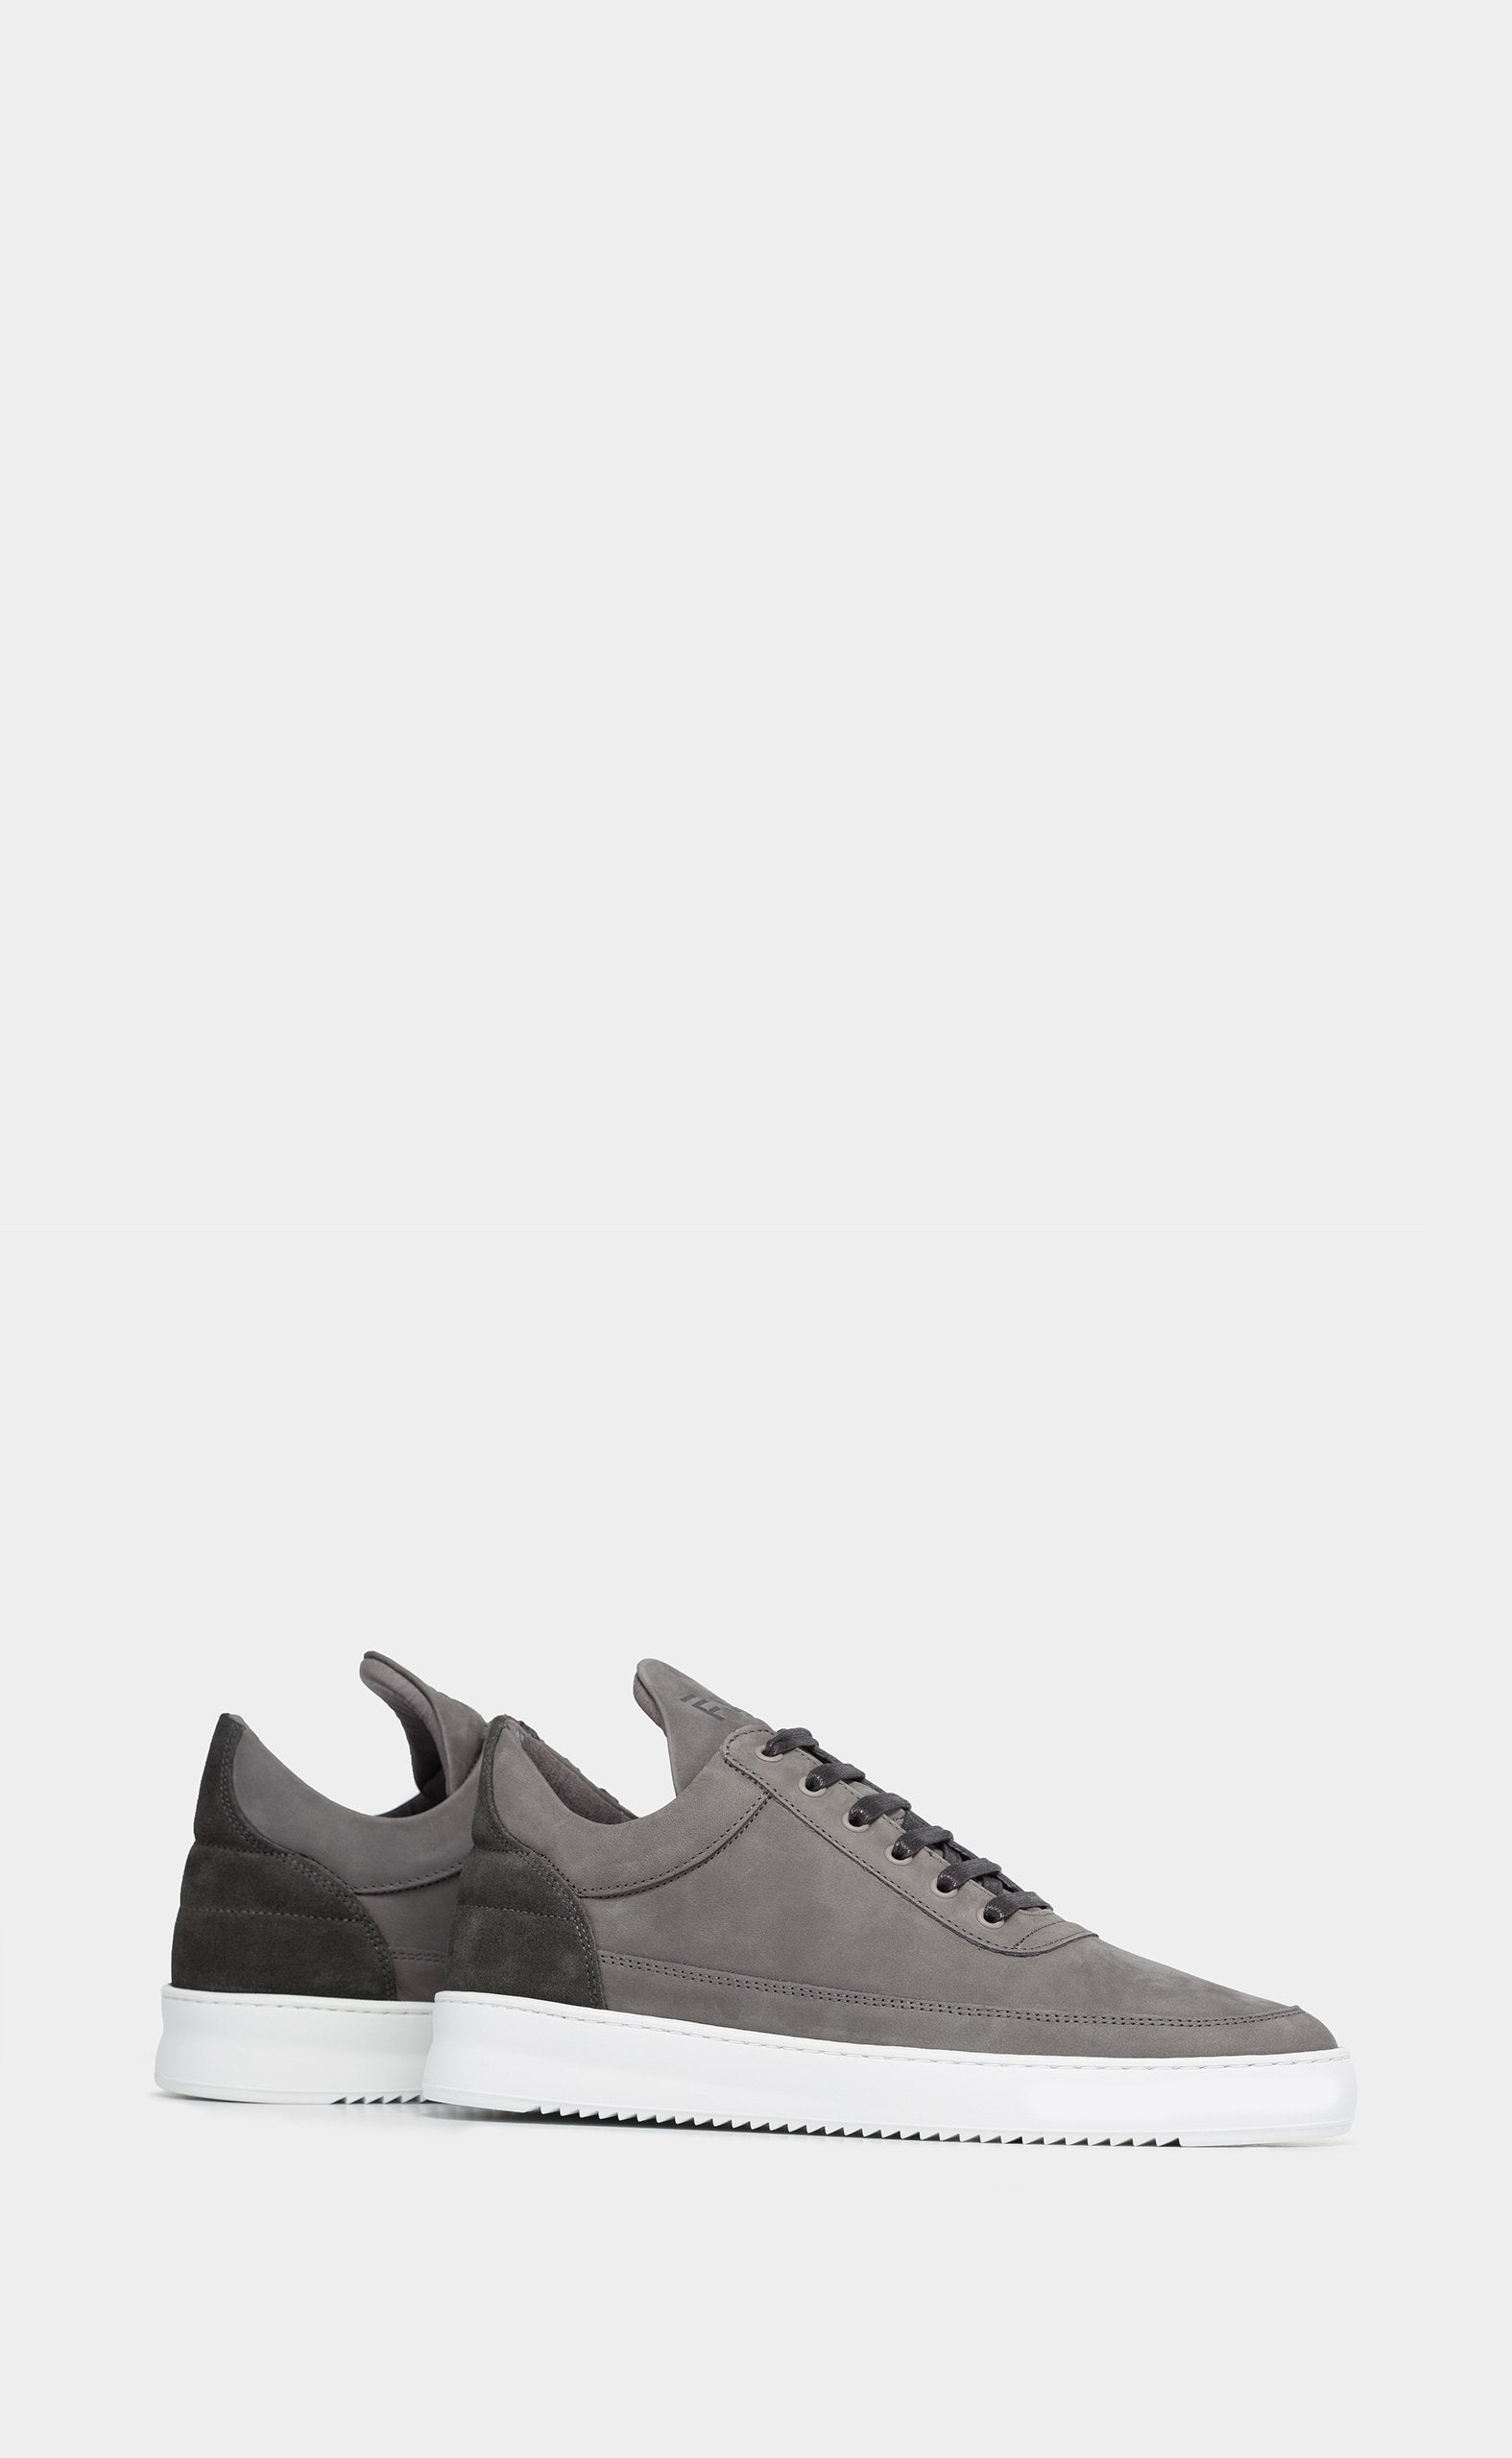 Low Top Nubuck Grey